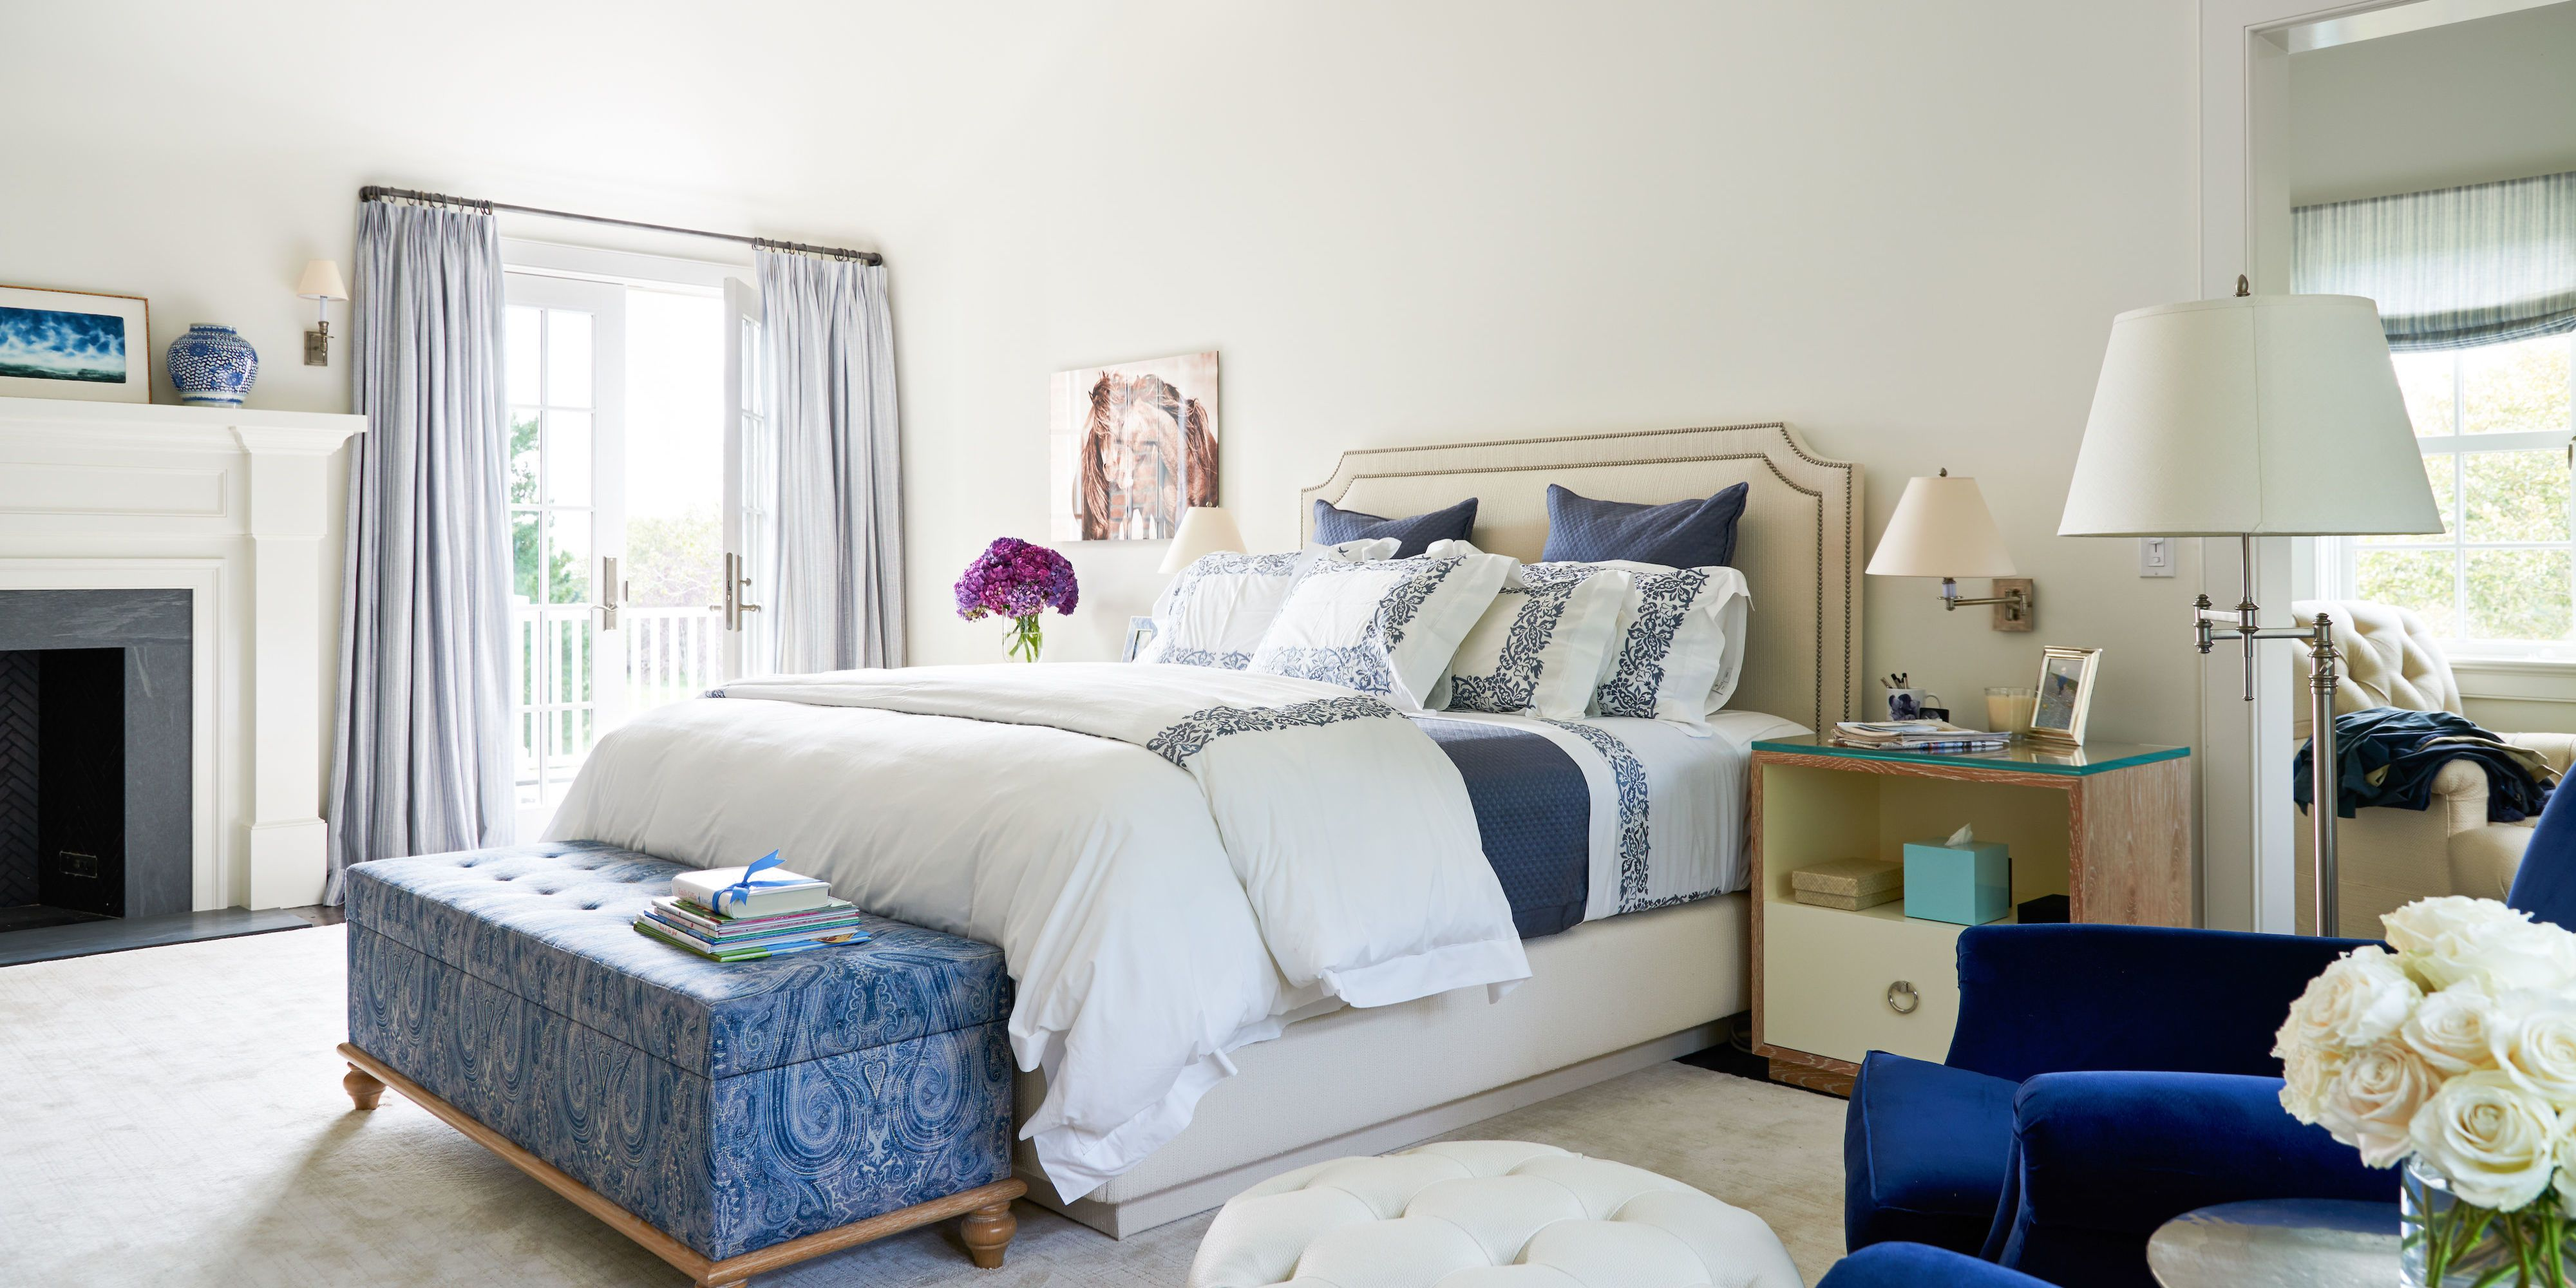 How To Decorate A Bedroom On Images of Modern